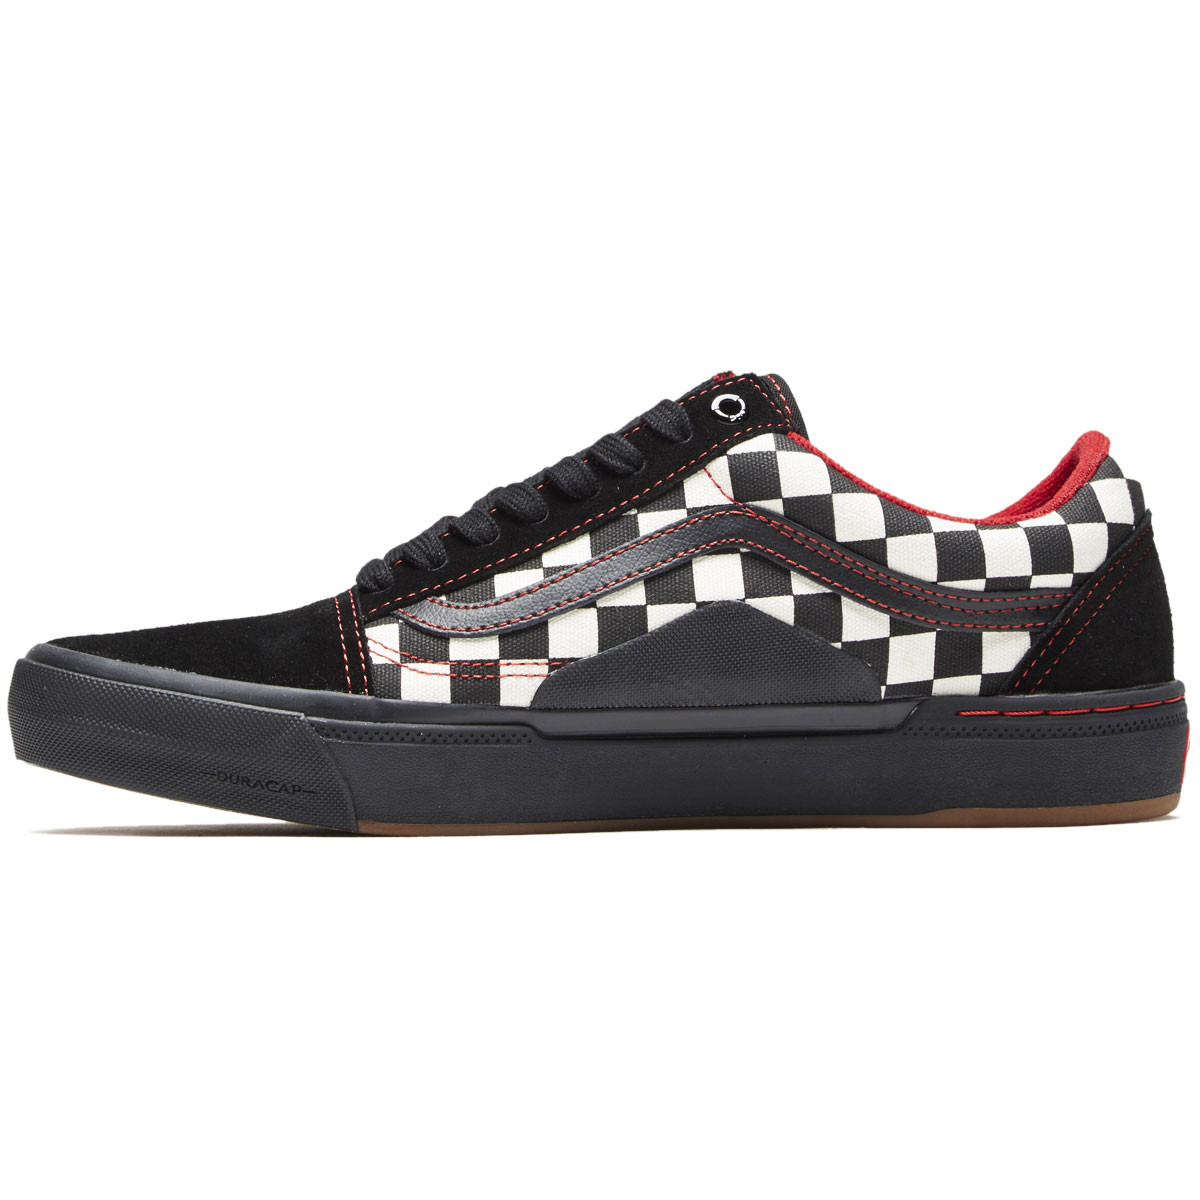 88905597f9a Vans Old Skool Pro BMX Shoes - Kevin Peraza Black Checkerboard - 10.0